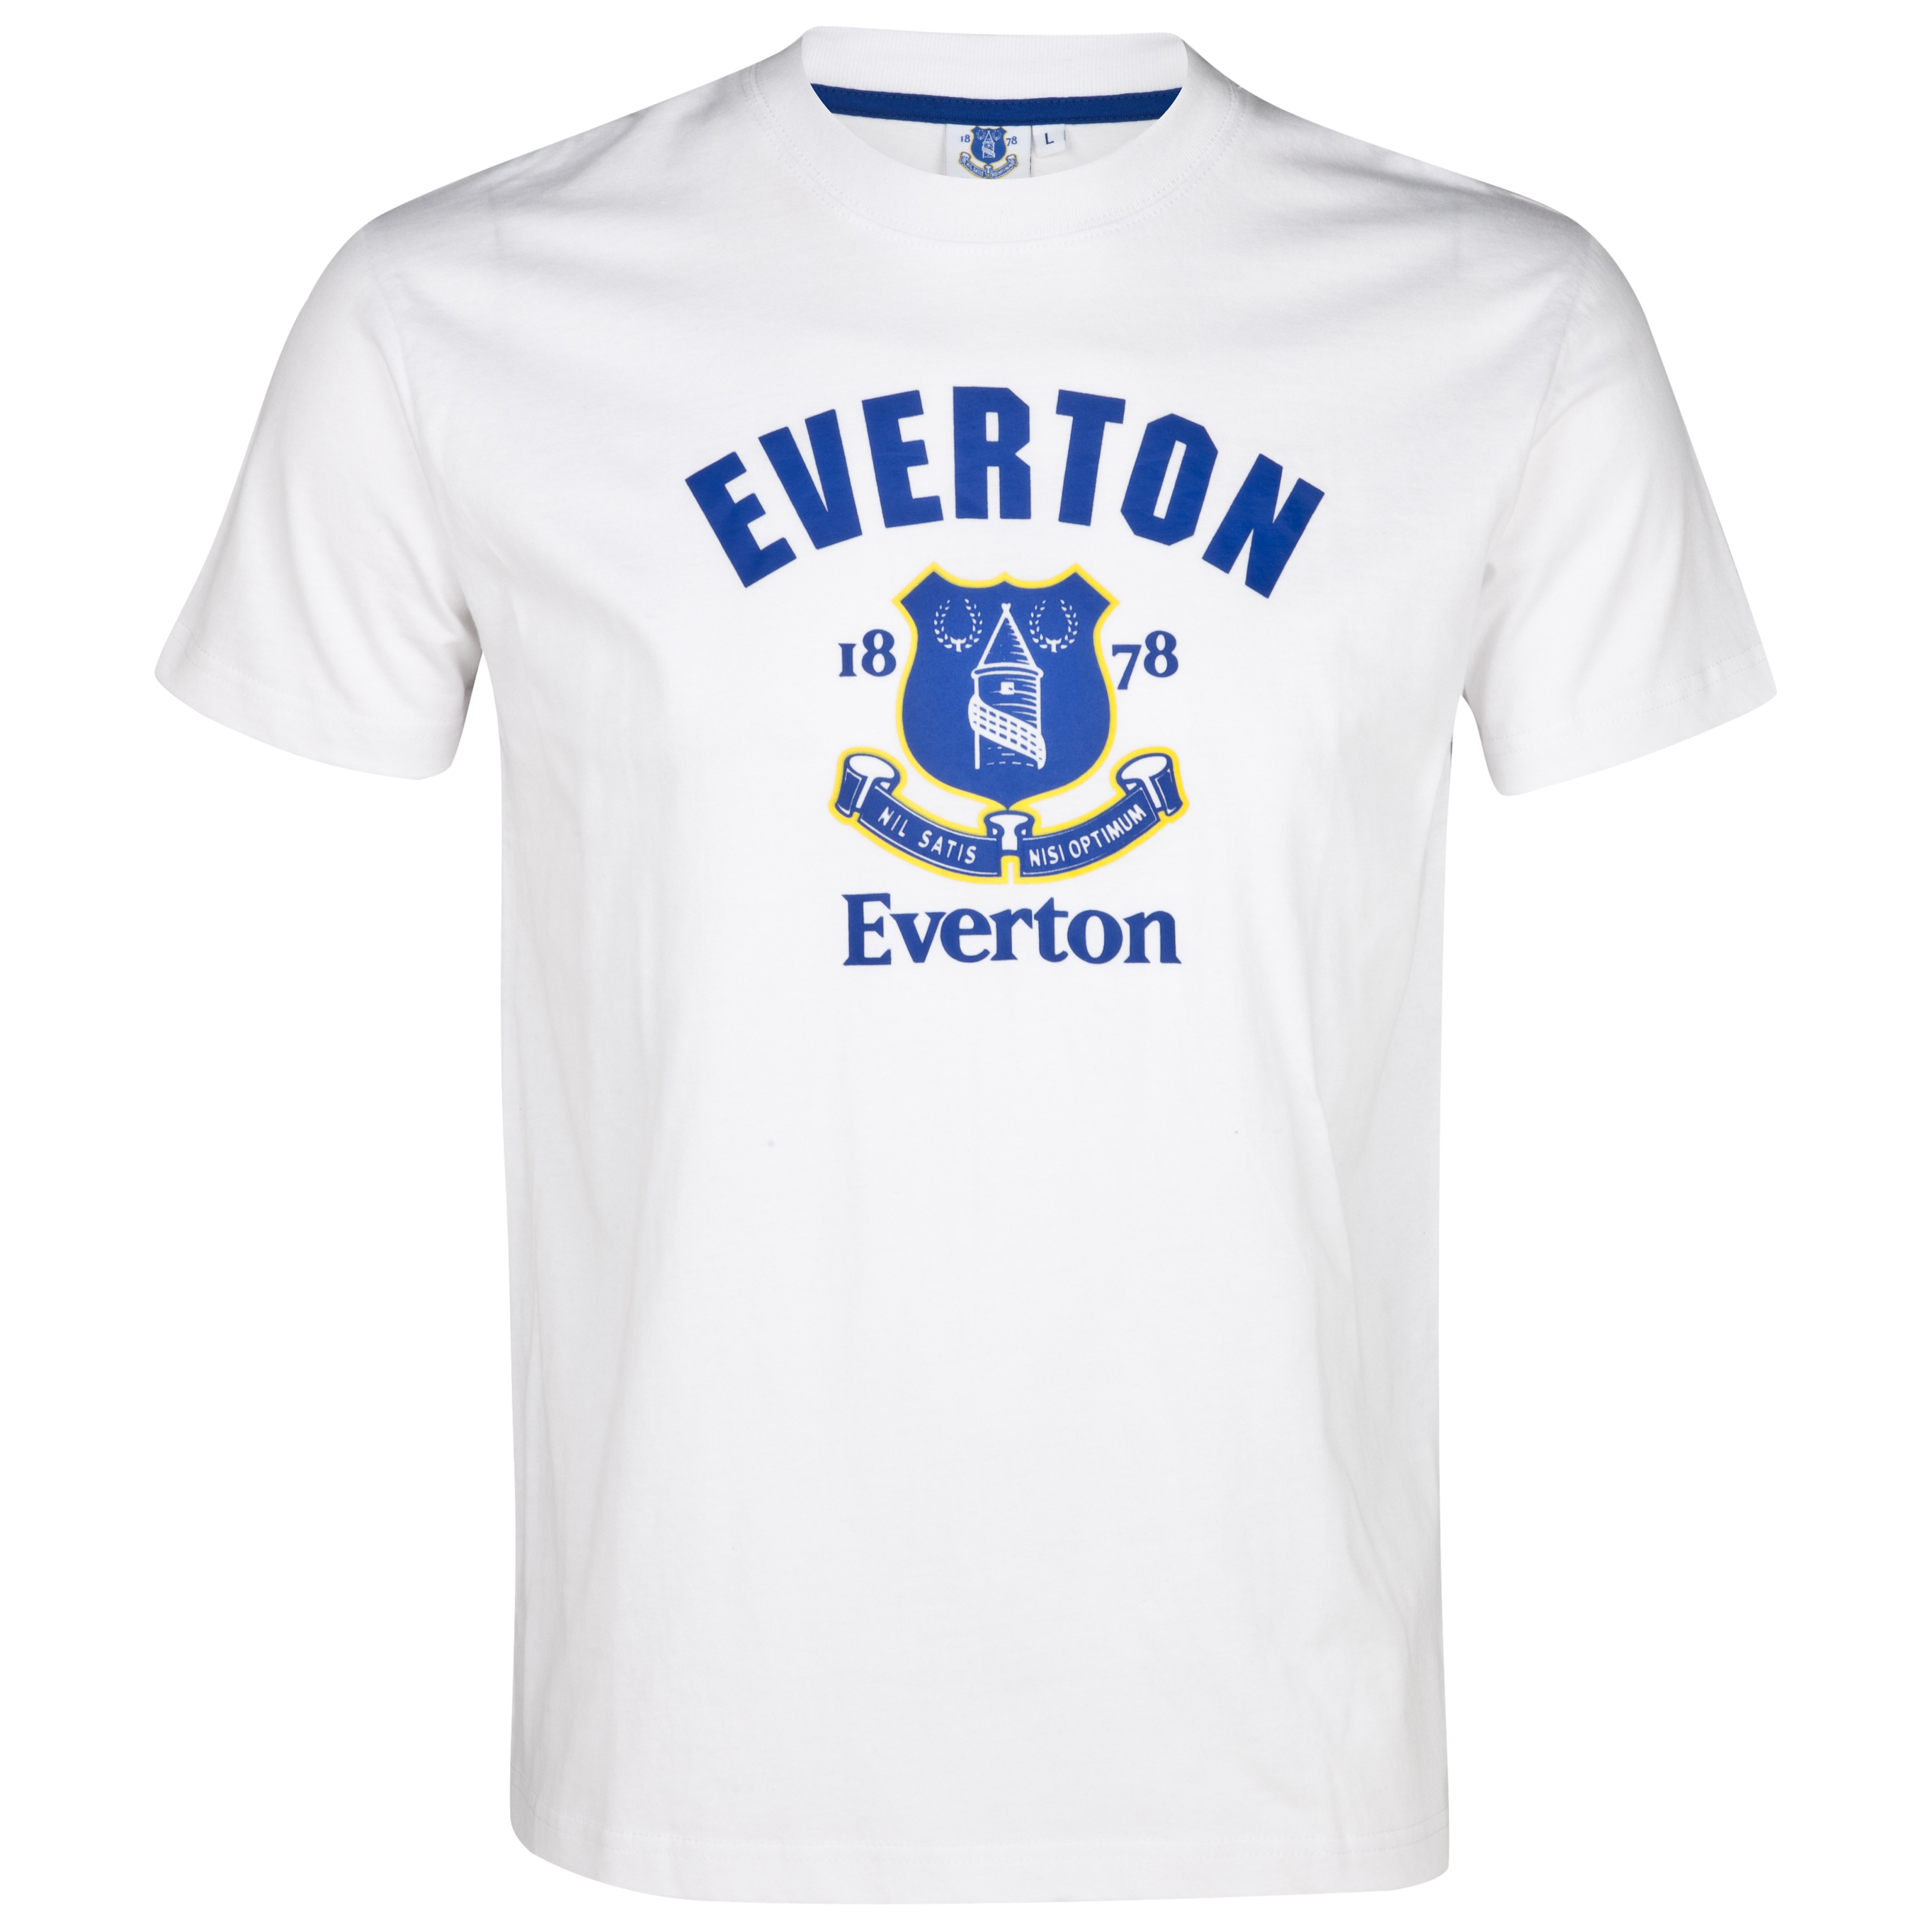 Everton Essentials Whistle T-Shirt - White